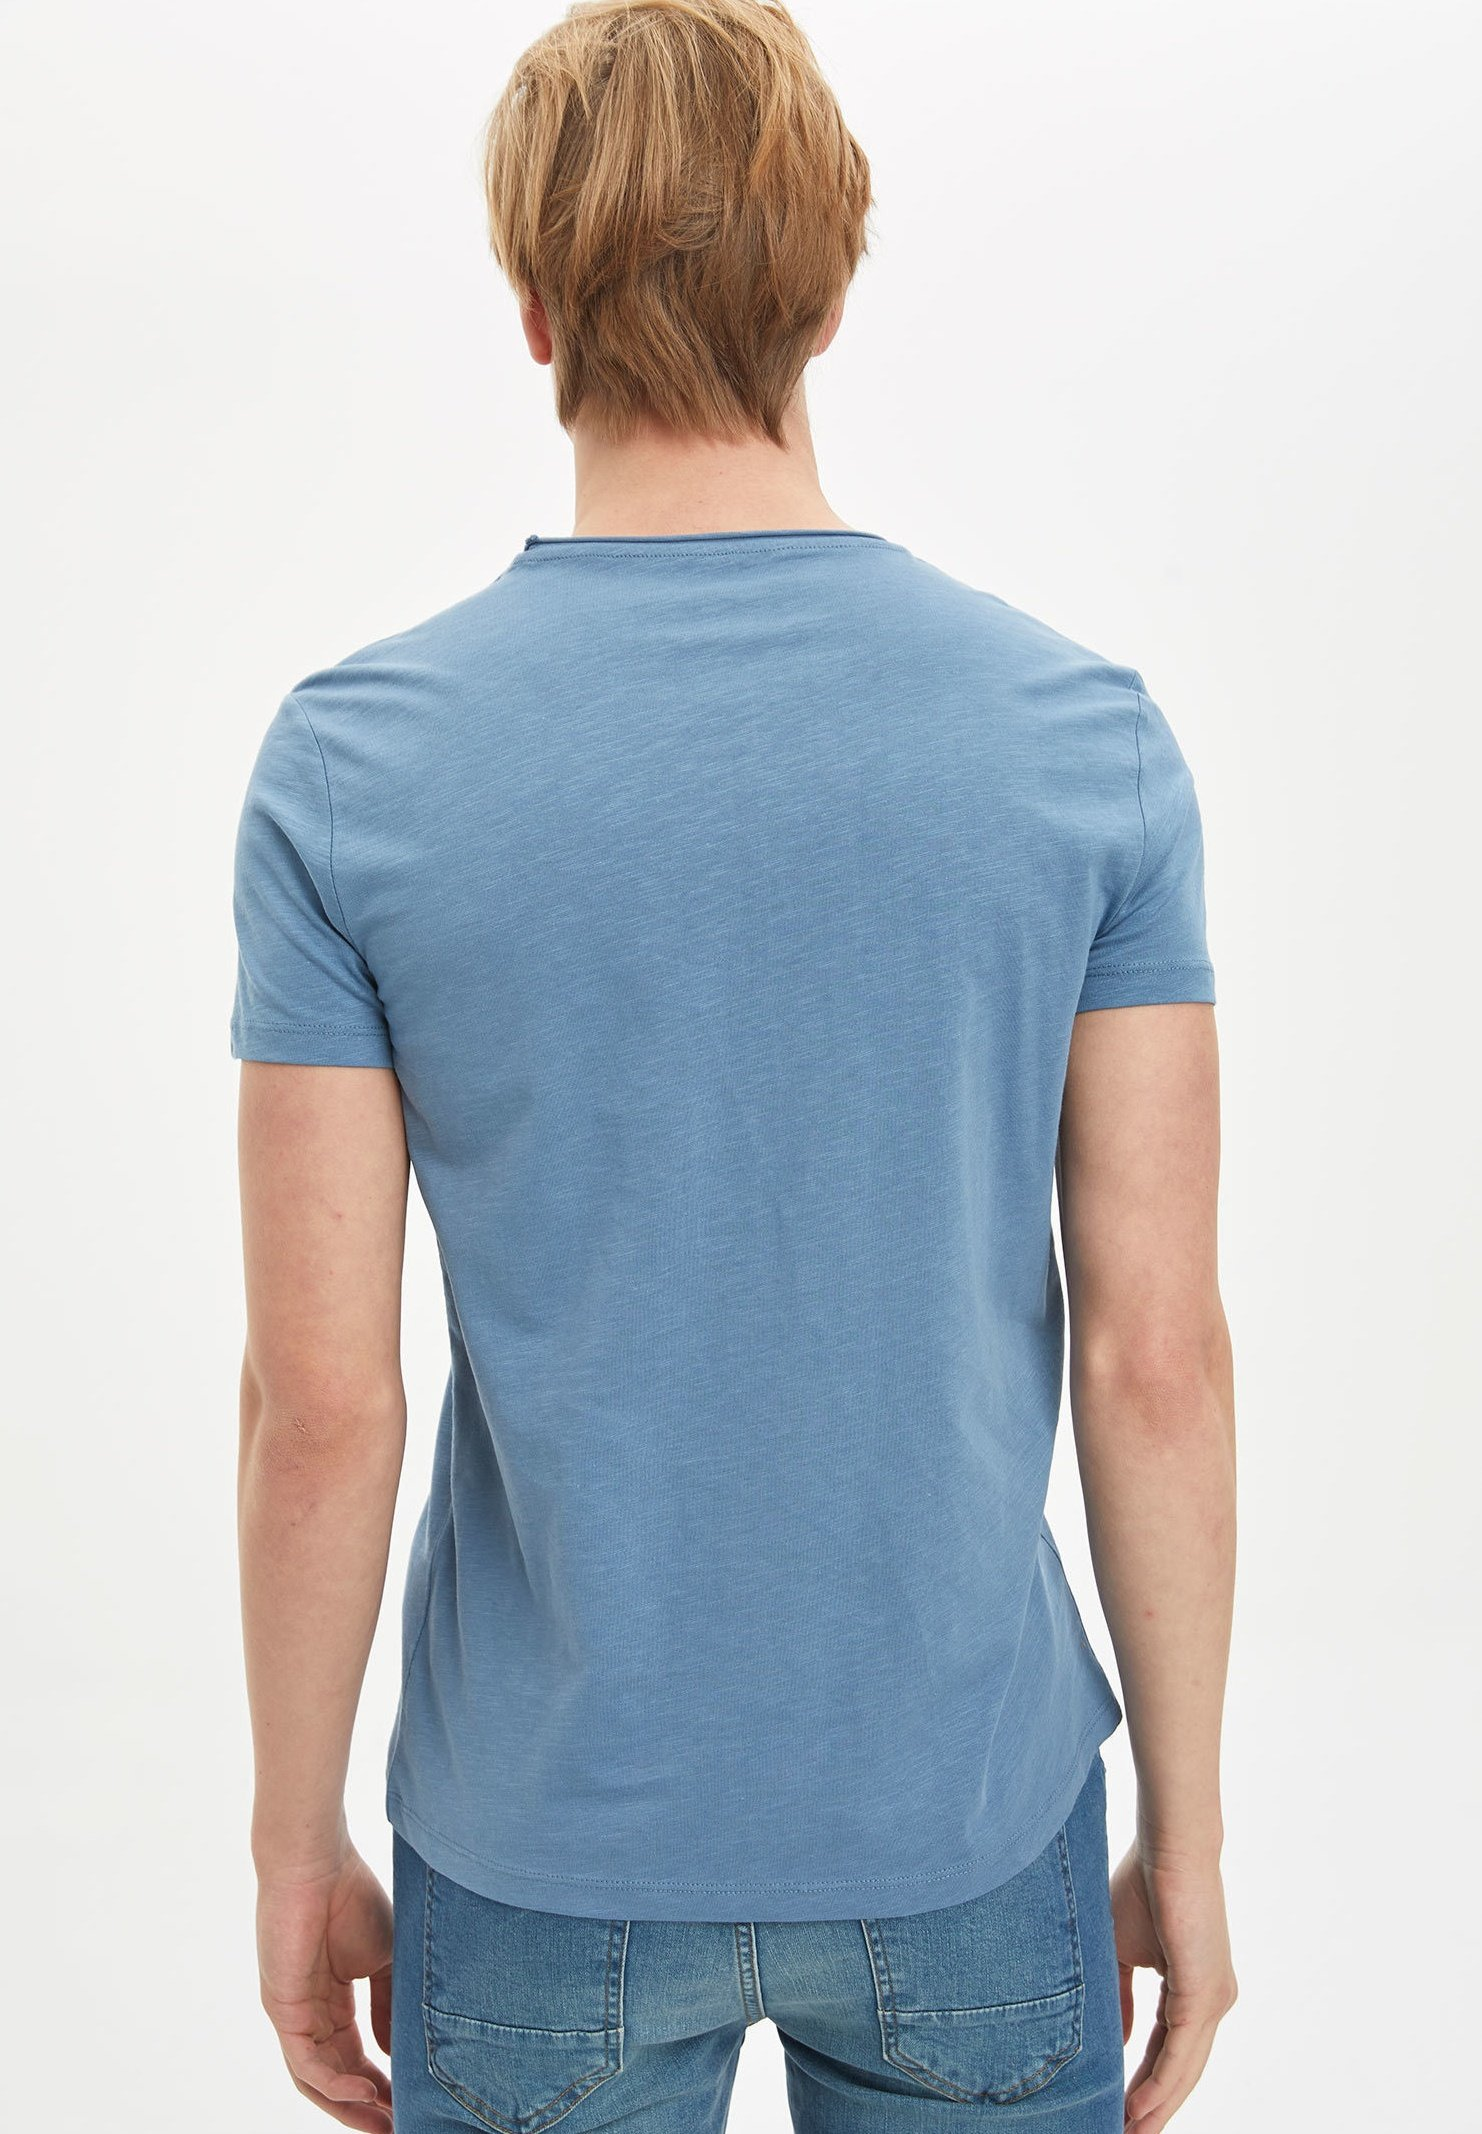 DeFacto Basic T-shirt - blue eMOL1